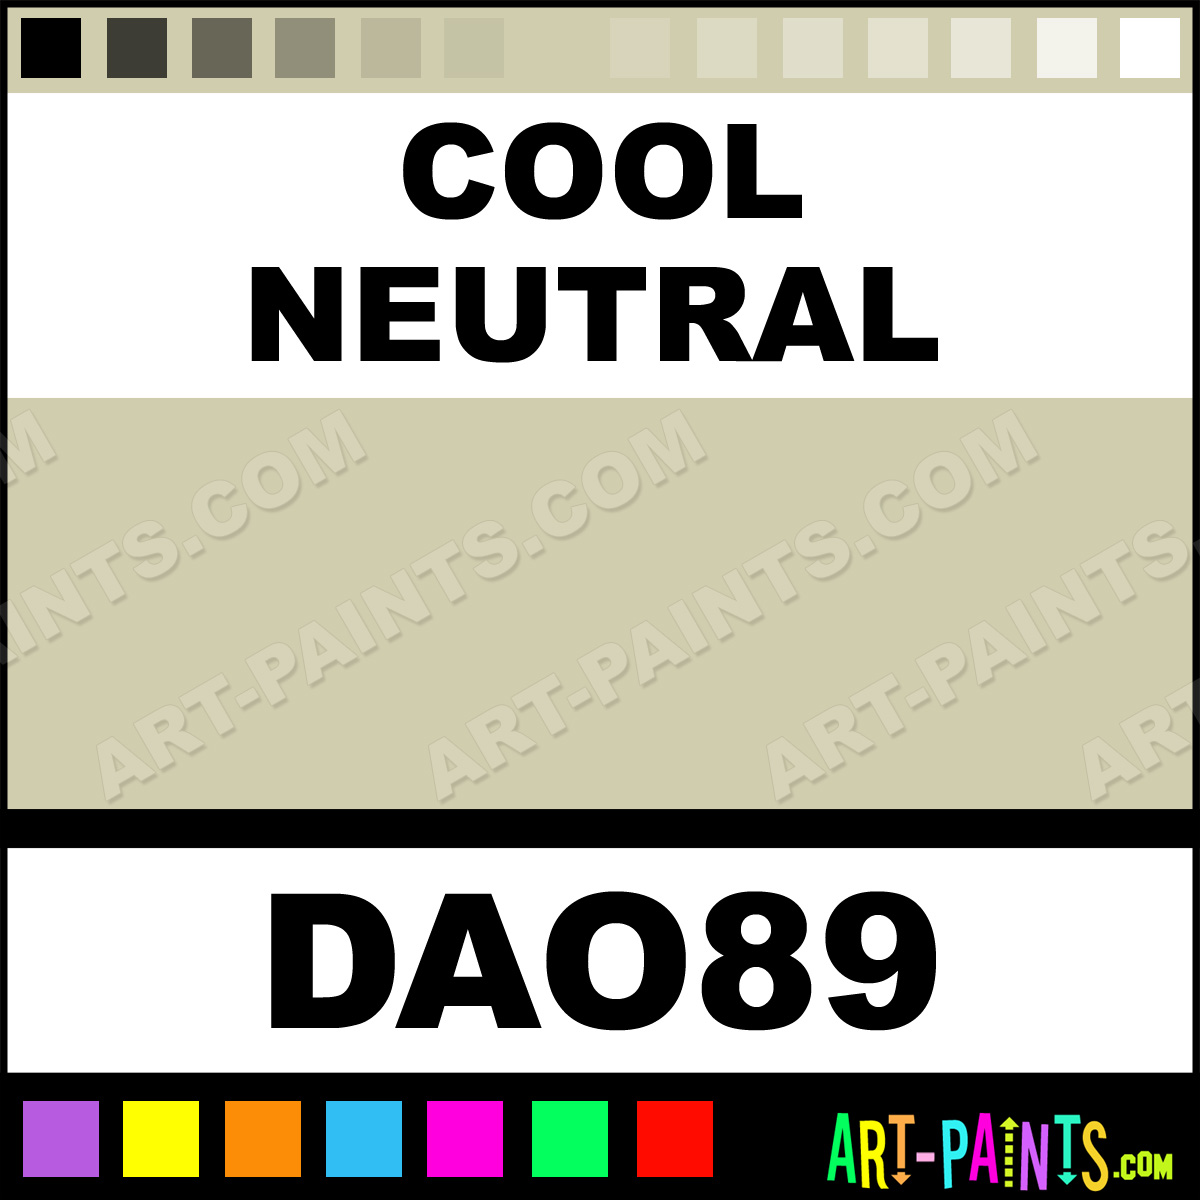 Cool neutral decoart acrylic paints dao89 cool neutral for Cool neutral paint colors